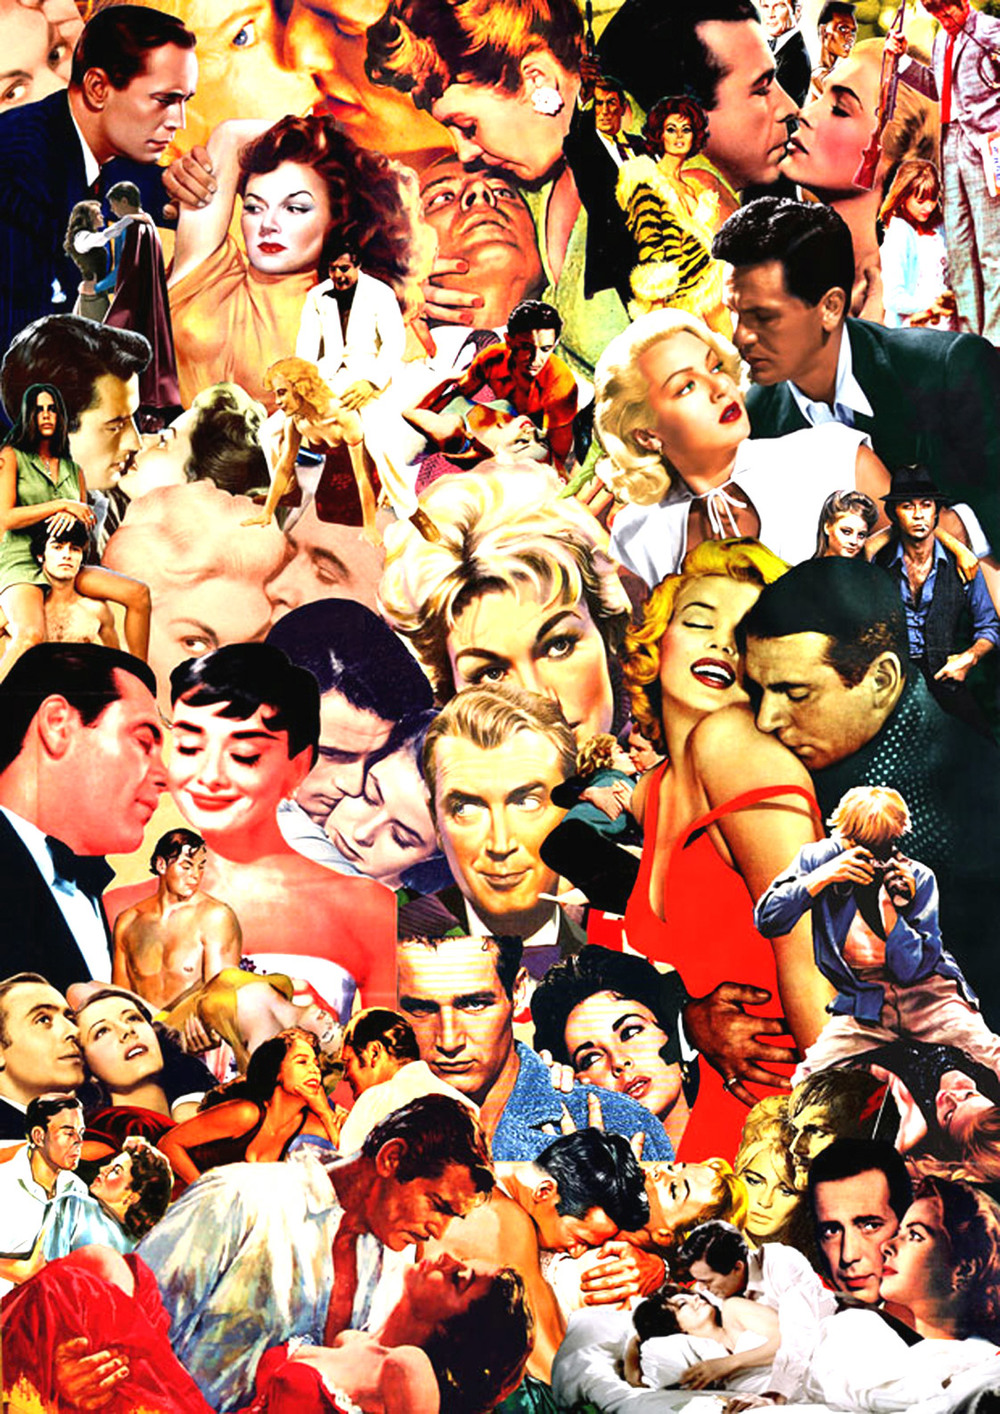 fascinating-film-made-from-clips-of-450-classic-movies-header.jpg